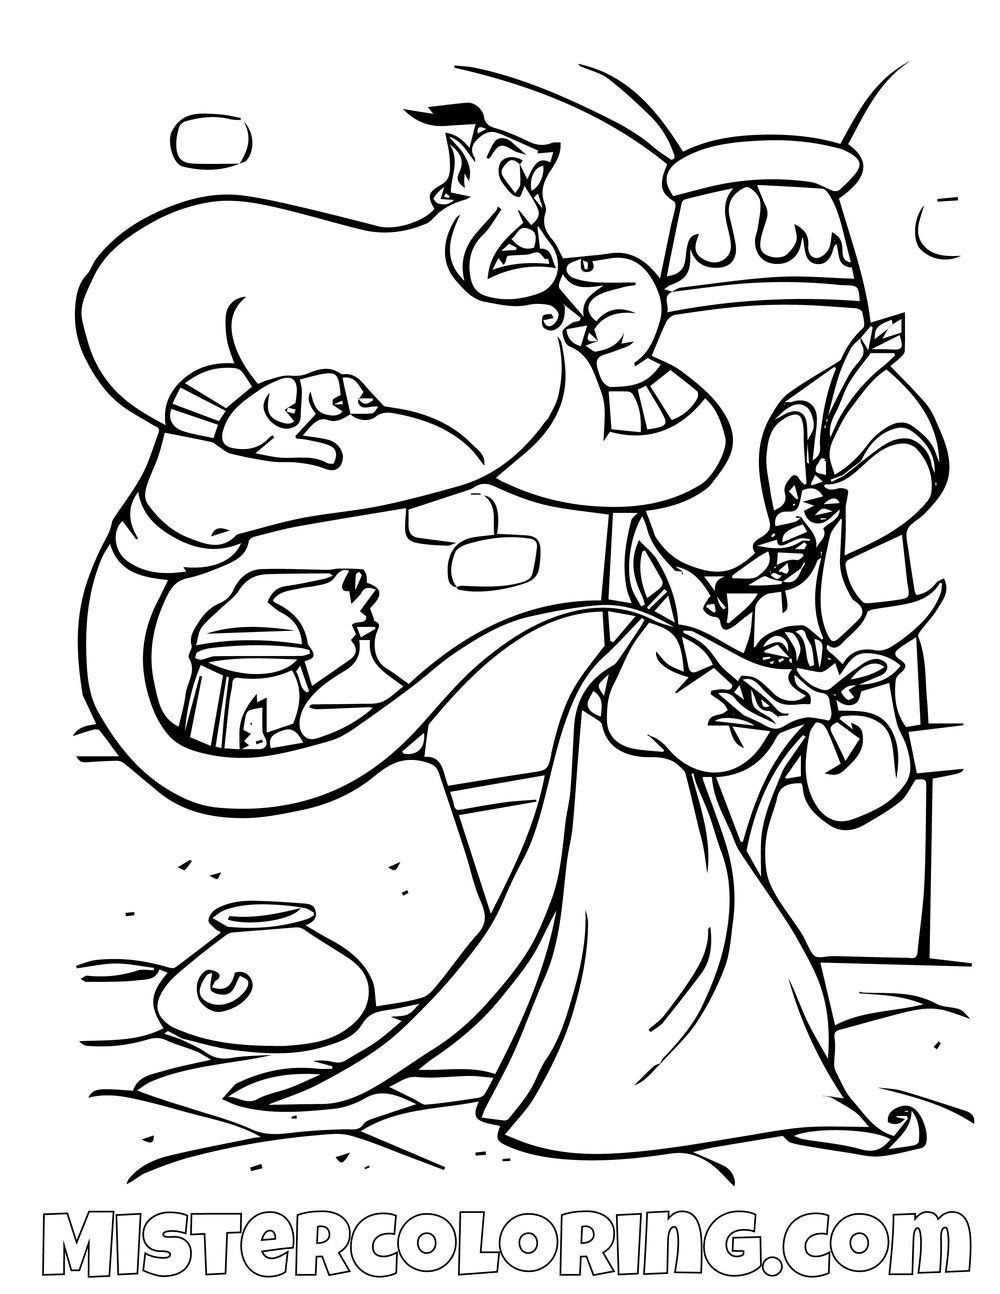 Genie Captured By Jafar Aladdin Coloring Page Monster Coloring Pages Princess Coloring Pages Disney Coloring Pages